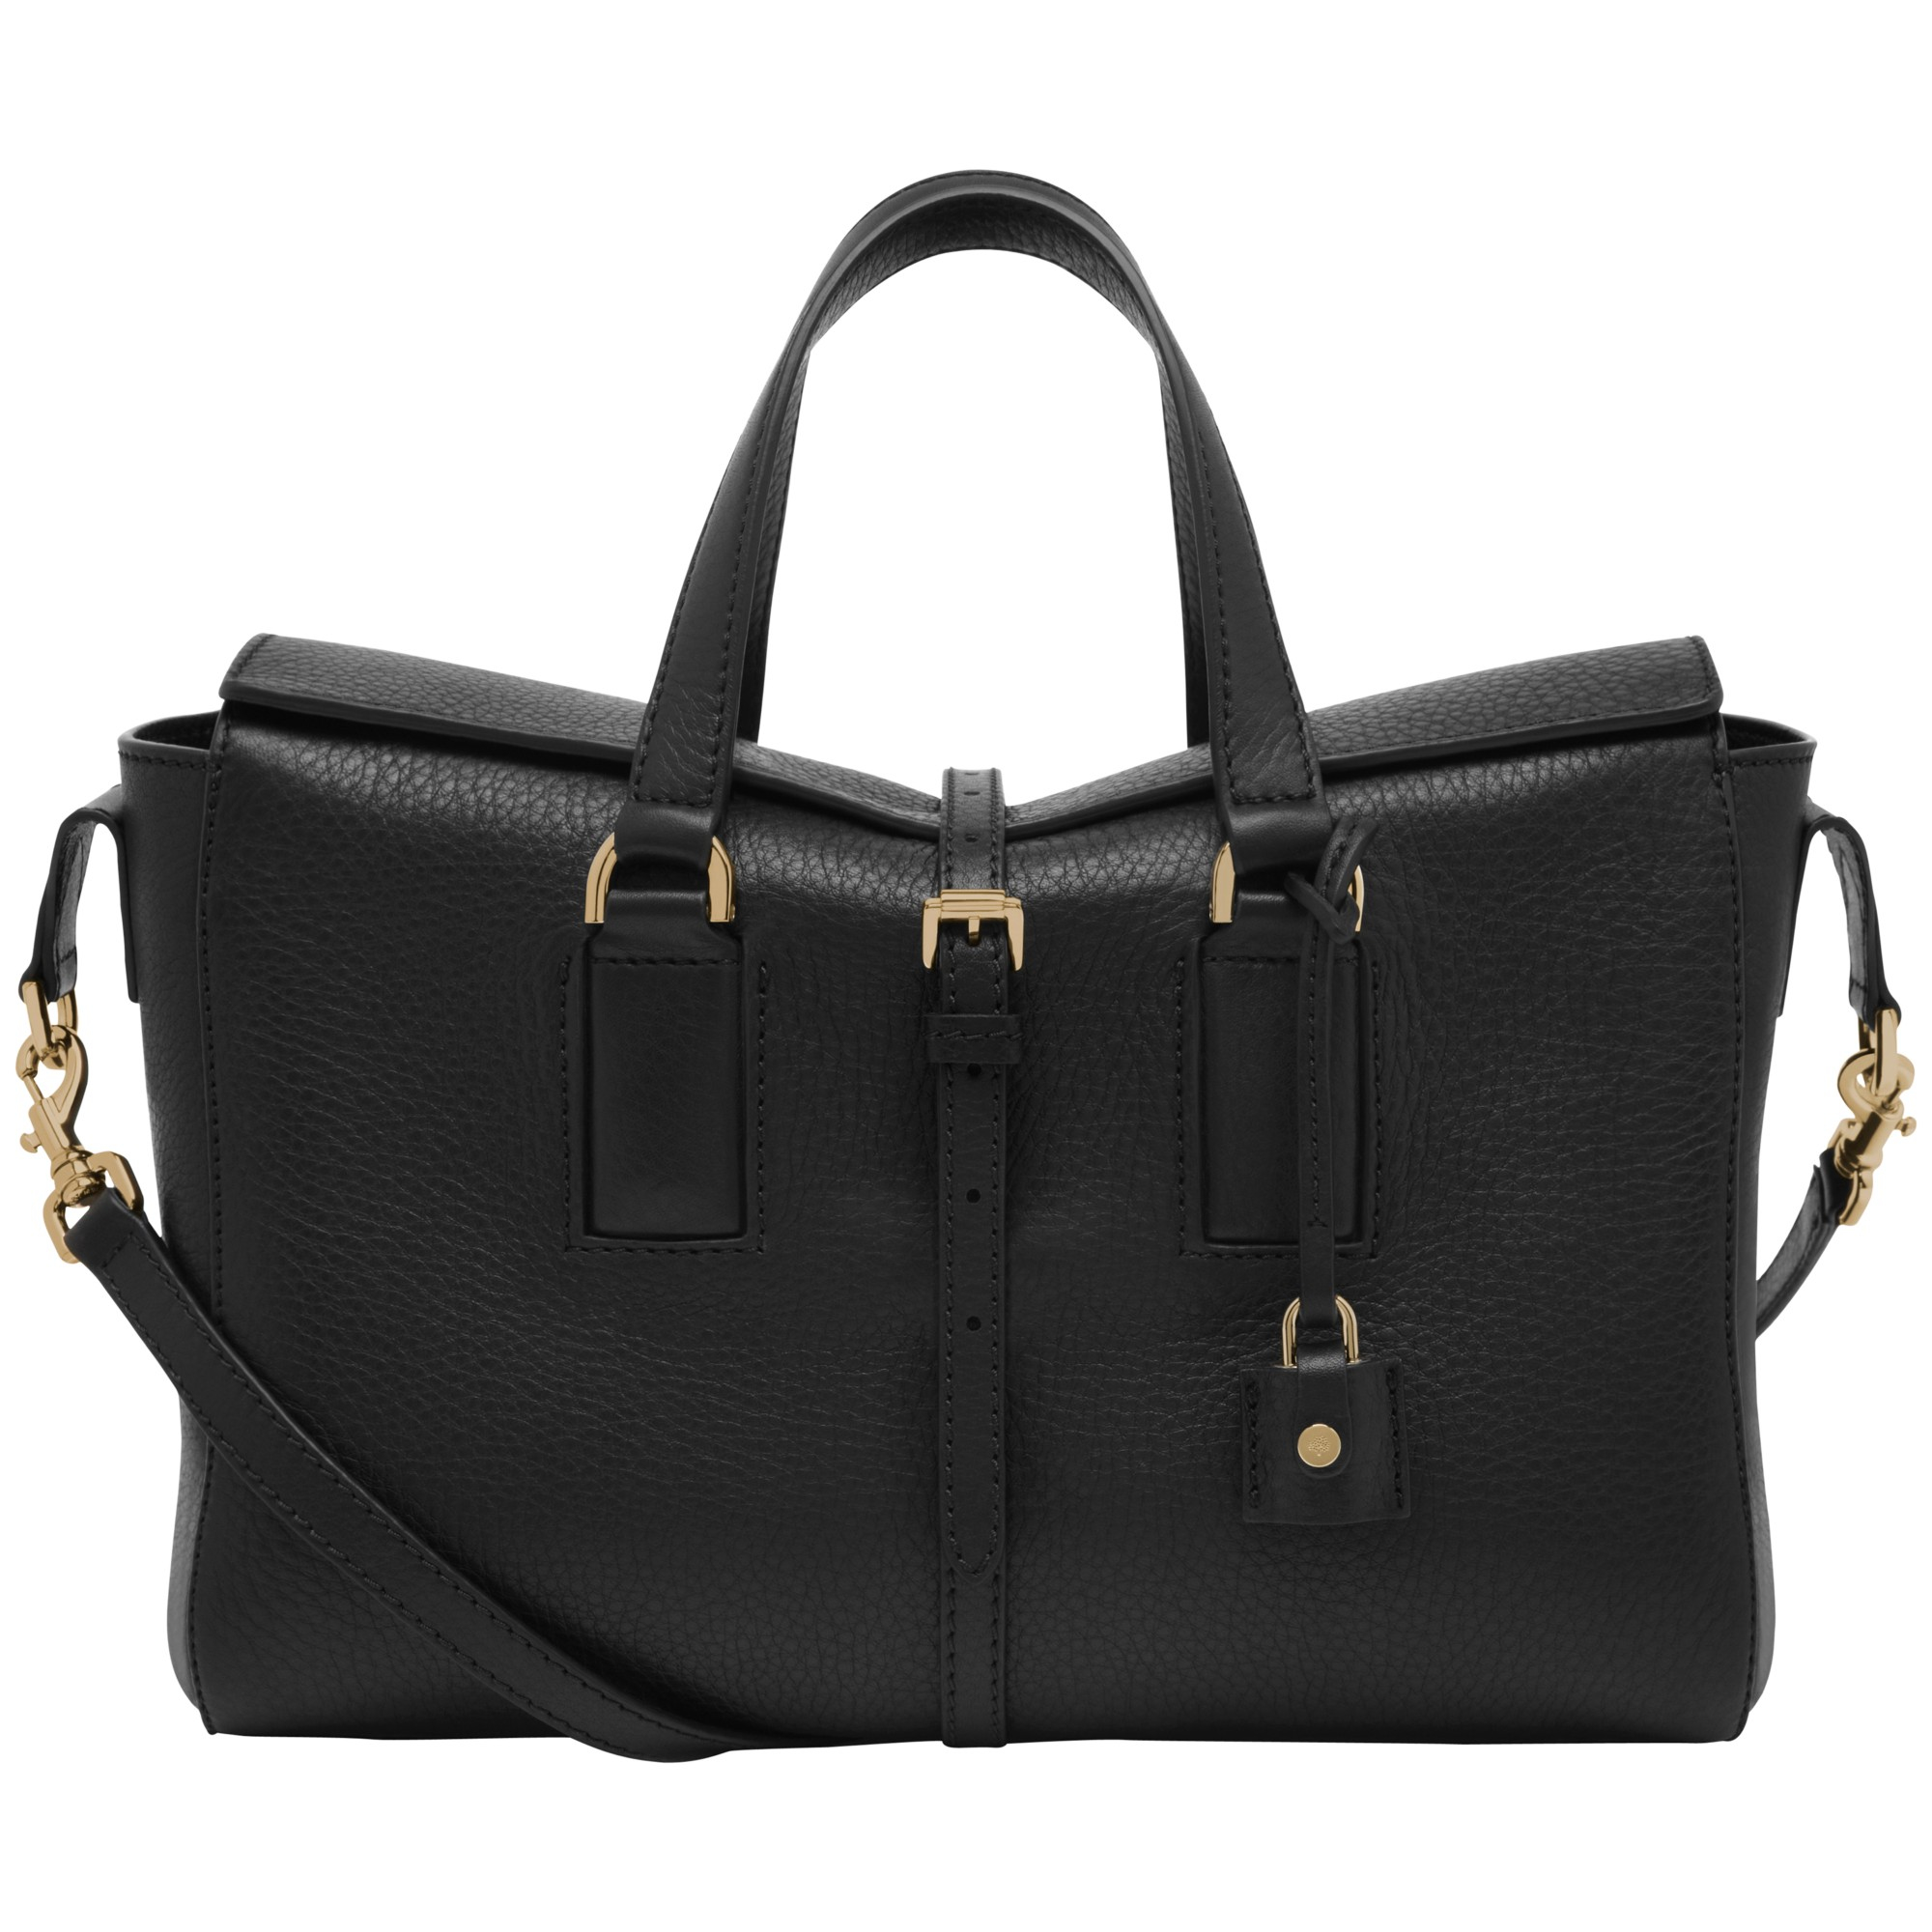 f9132f2158a1fe Small Black Leather Grab Bag | Stanford Center for Opportunity ...